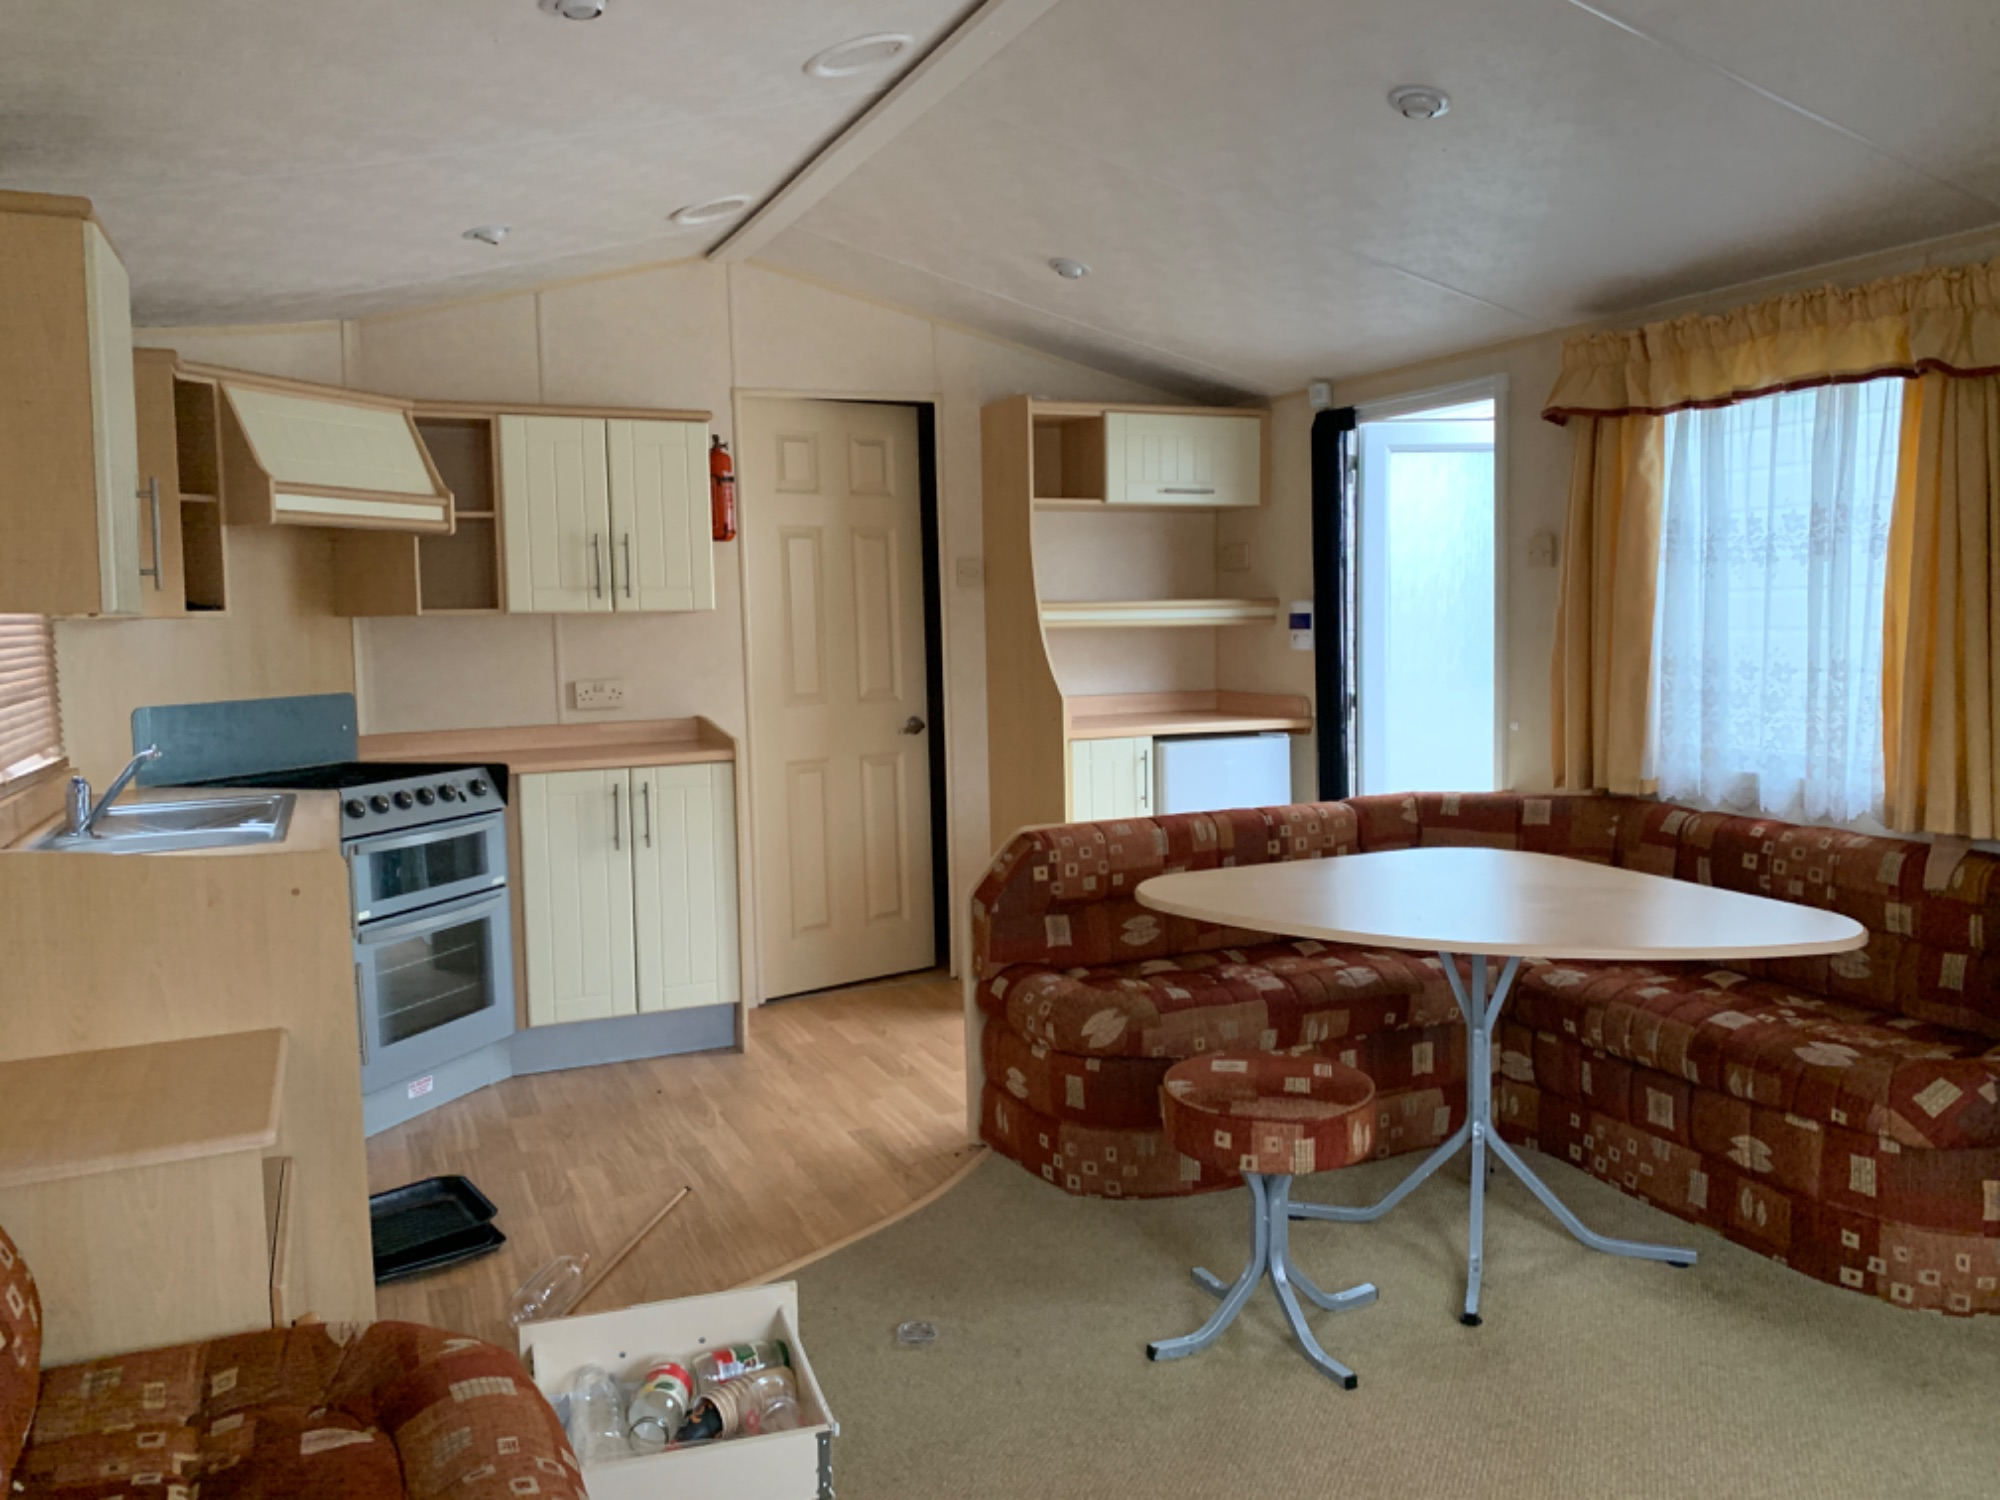 2007 Willerby Solices 37/12-3 bed Dg ch